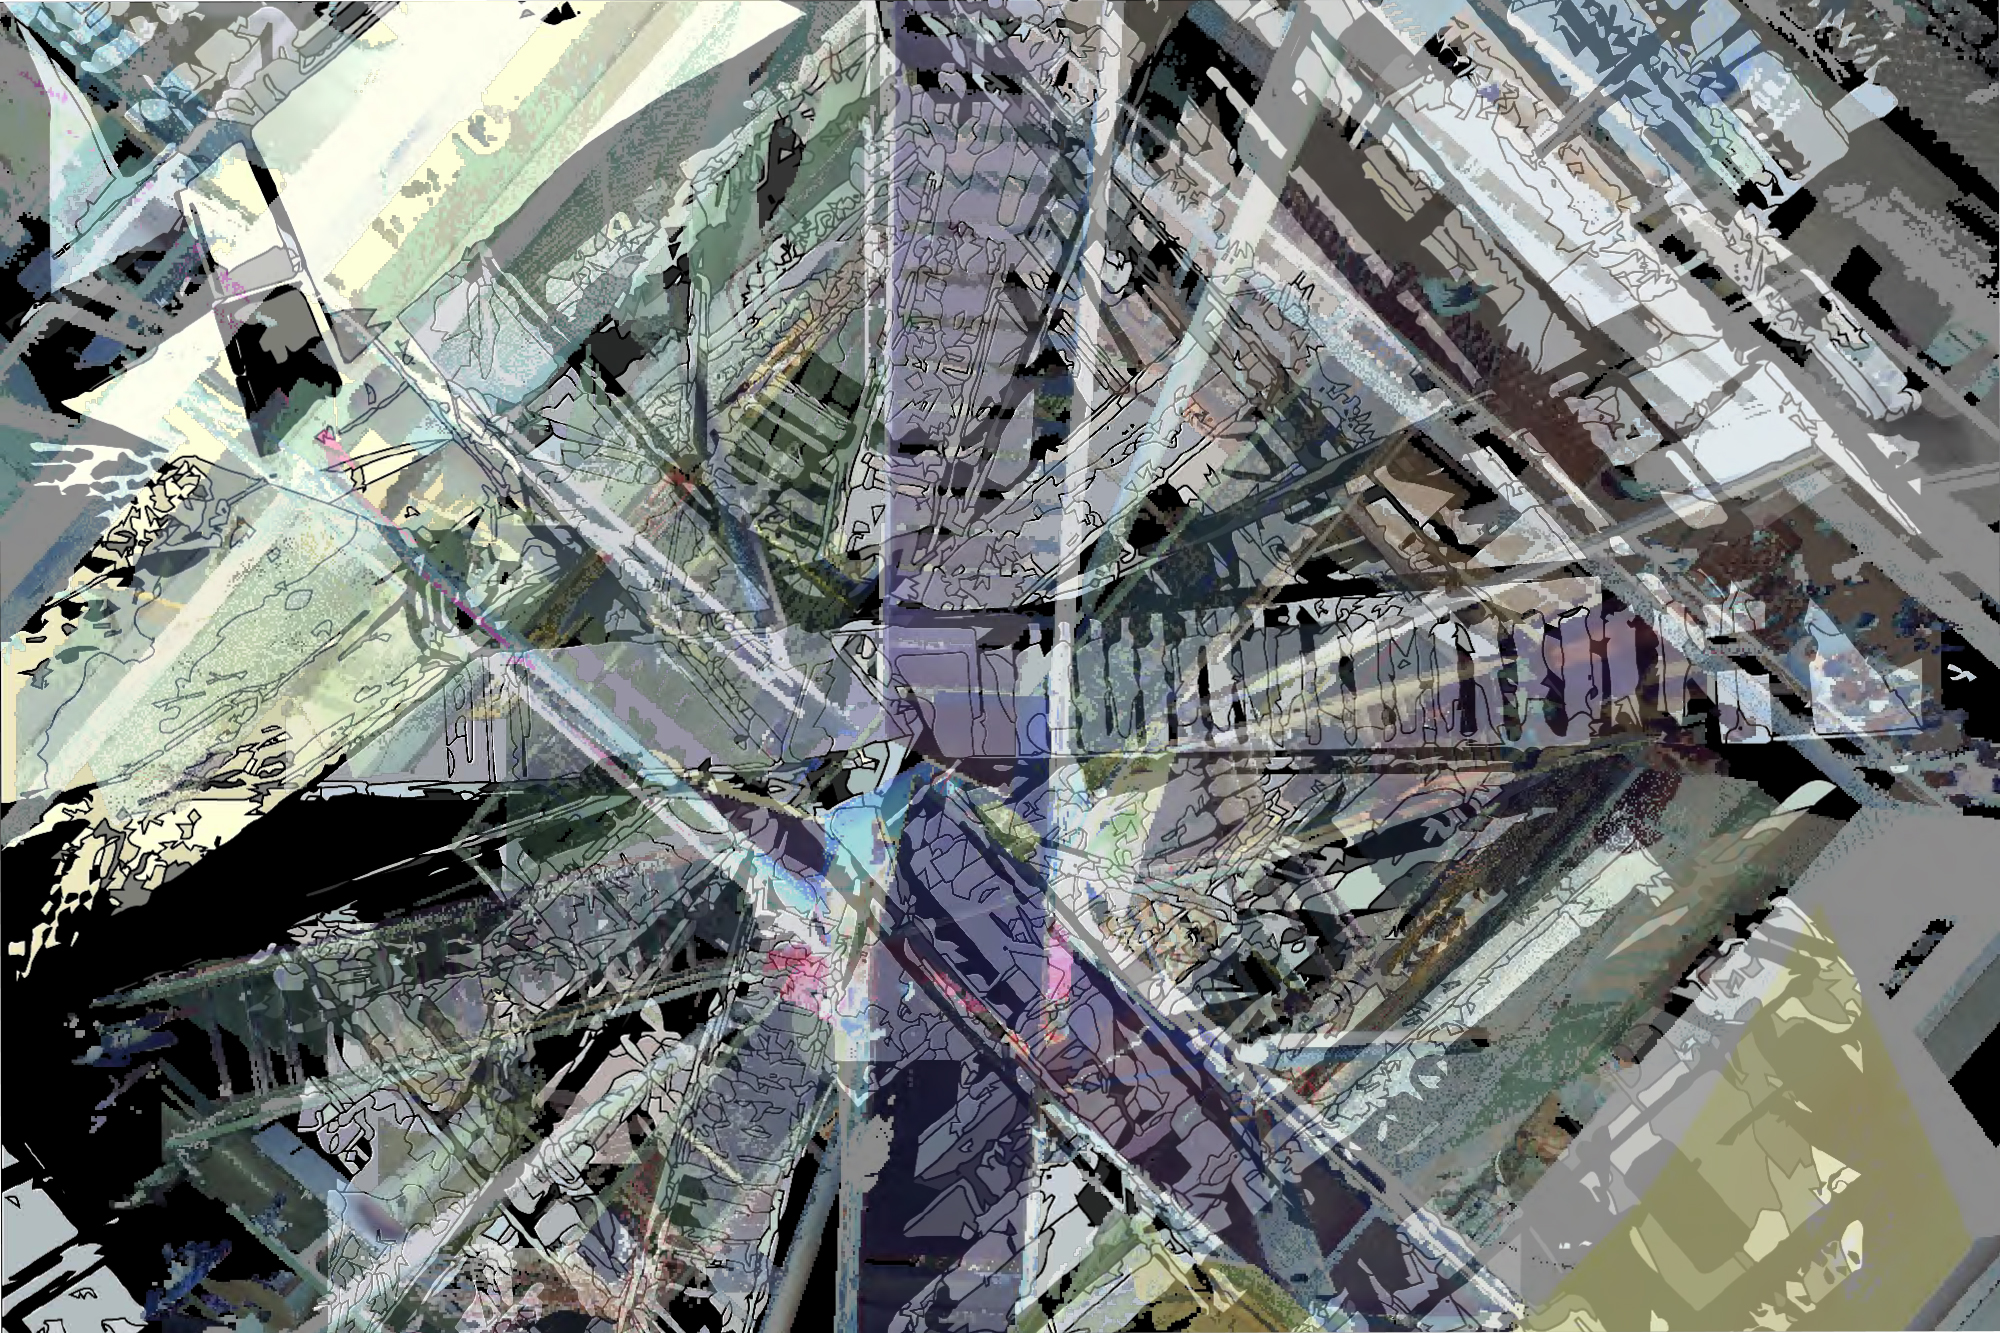 CIty-College-New-York-CUNY-ValmiraGashi-3D-laser-scanning-point-cloud-new-york-1.jpg